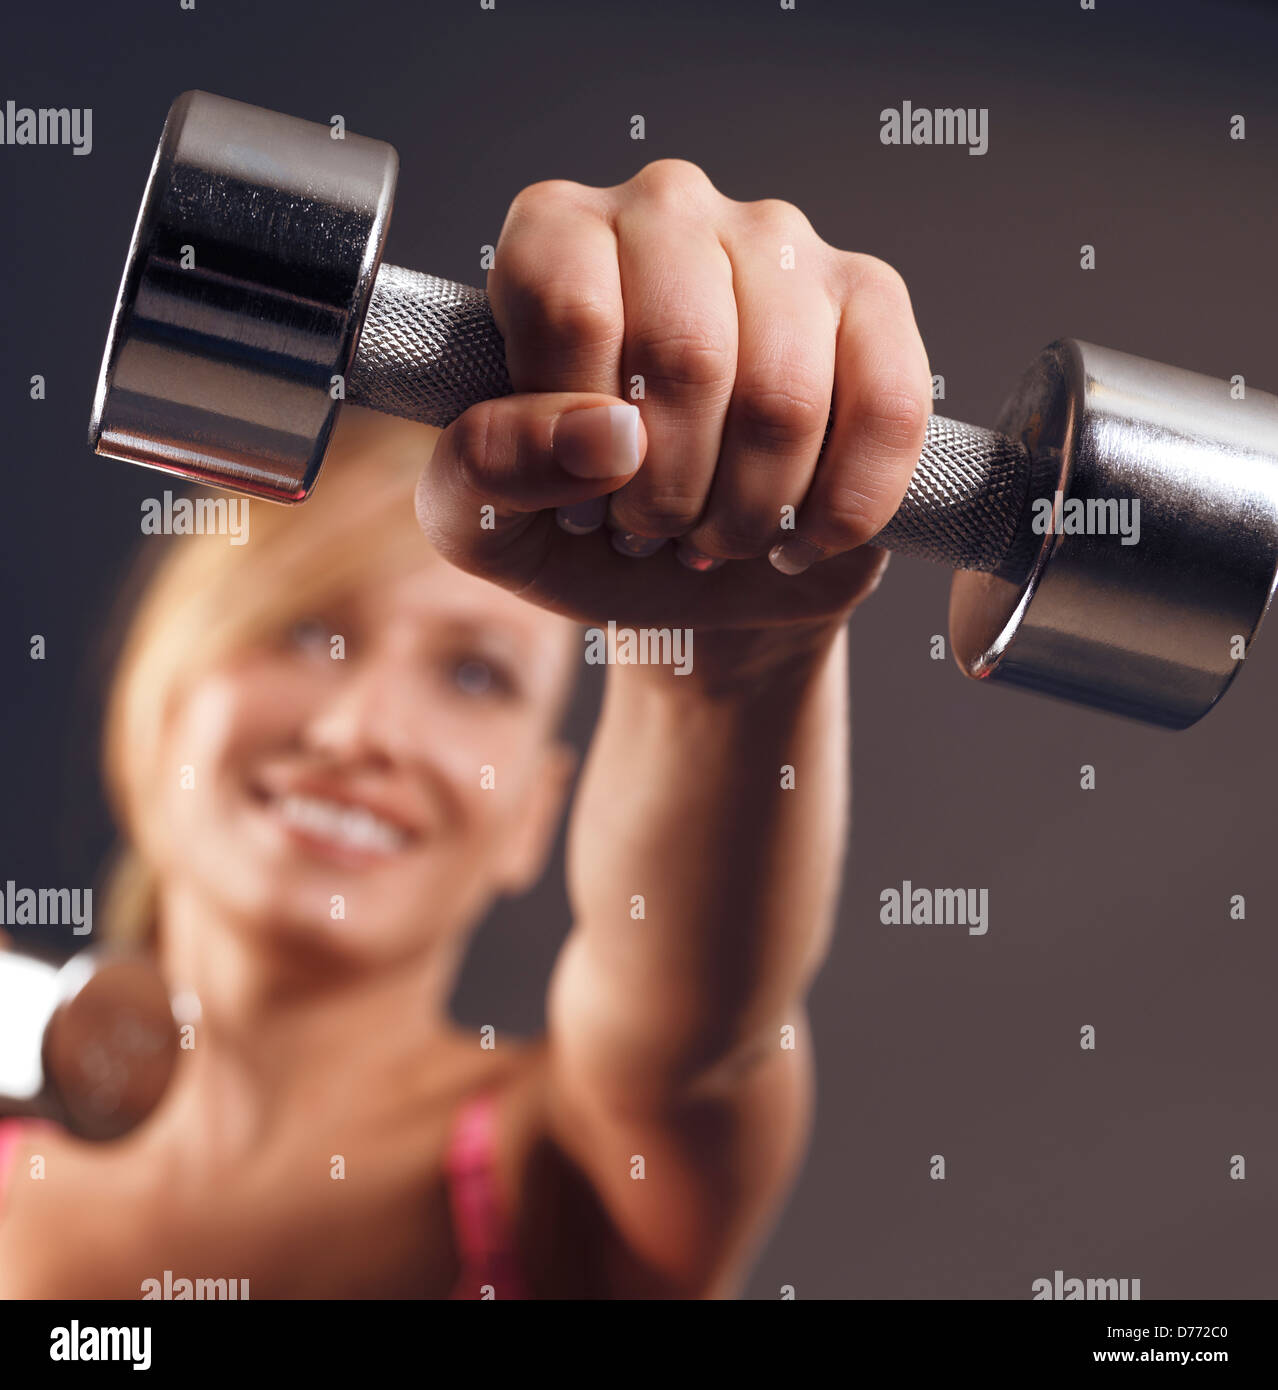 Young smiling woman doing cardio fitness workout with weights, closeup of a hand with a dumbbell - Stock Image